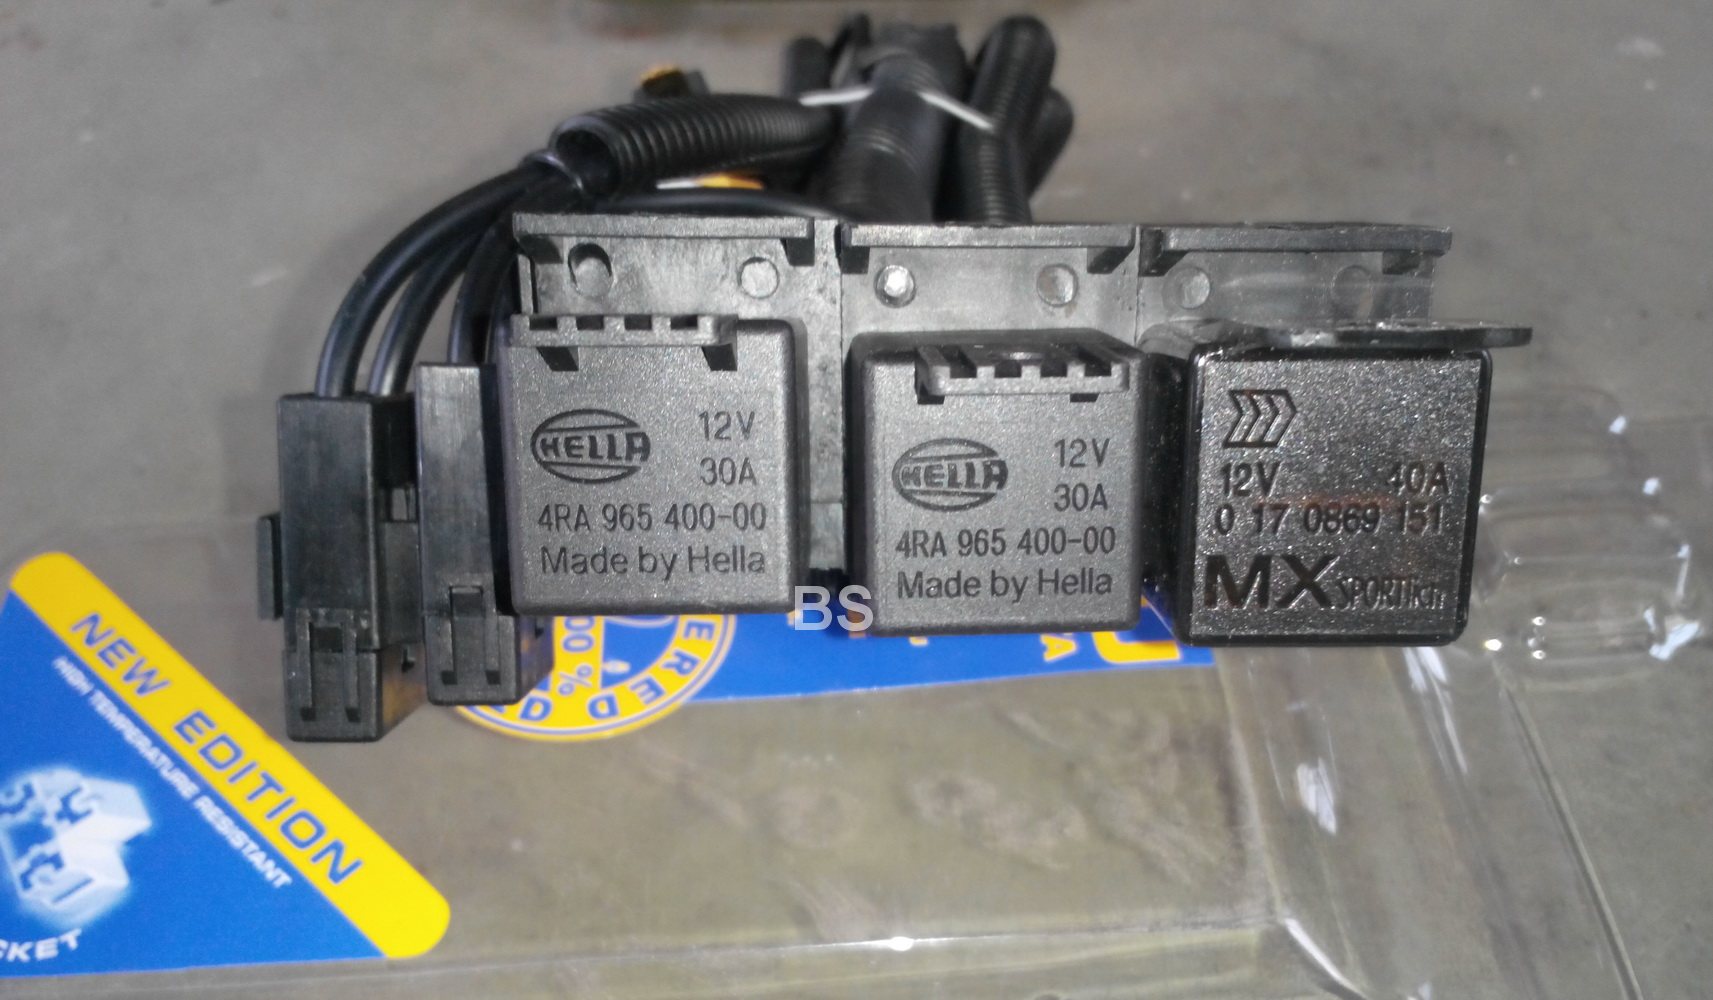 Hella Kabel Relay Lampu / Kabel Set 3 Relay 2 Lampu Murah